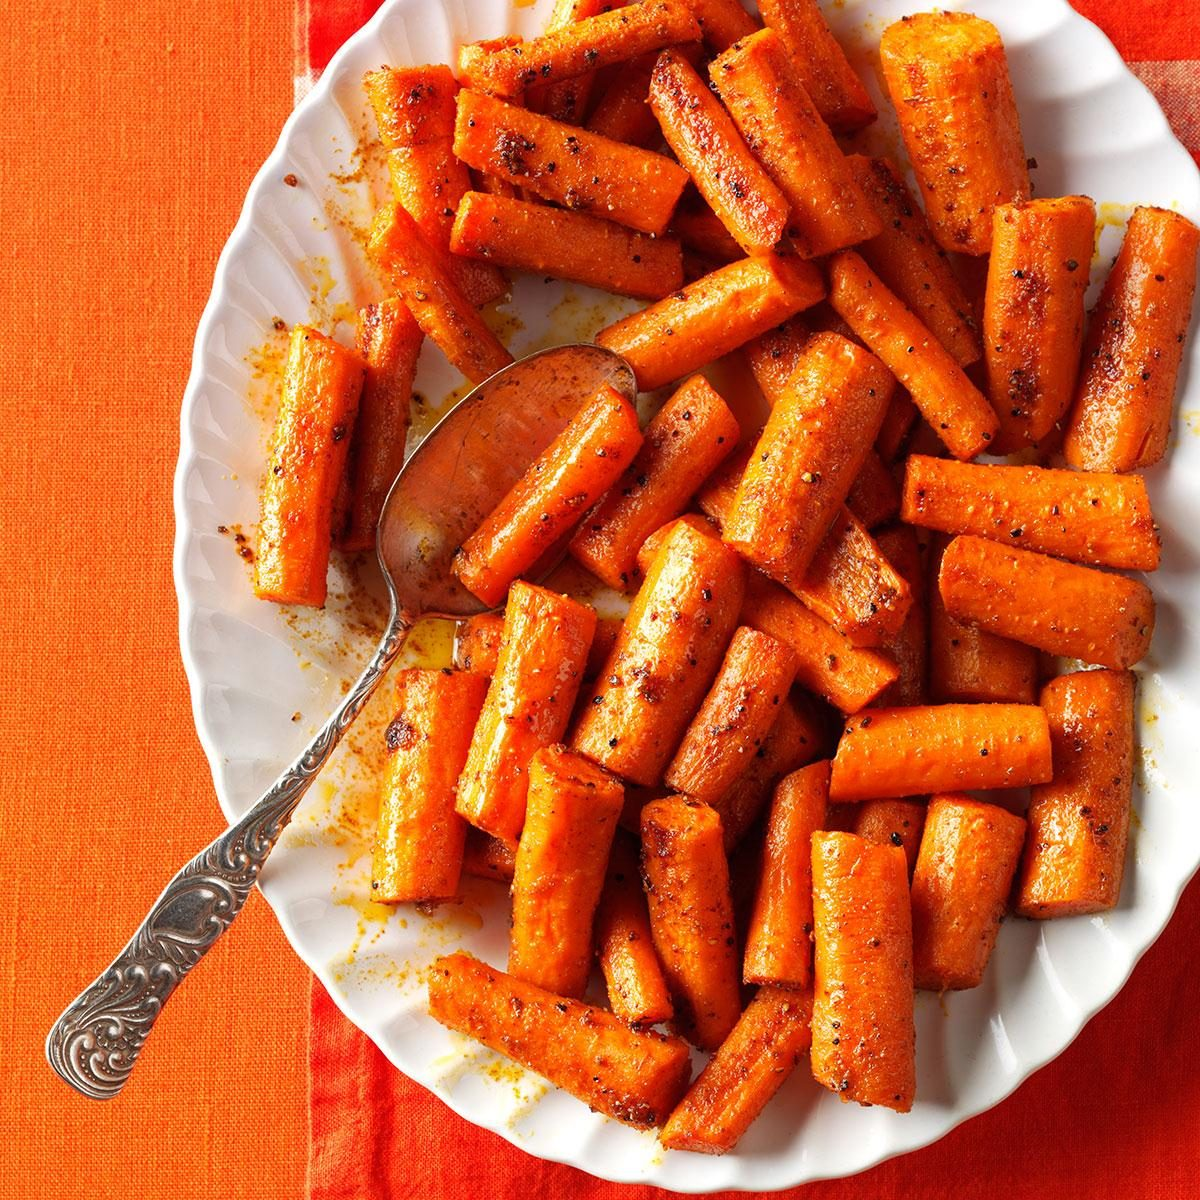 Oven-Roasted Spiced Carrots